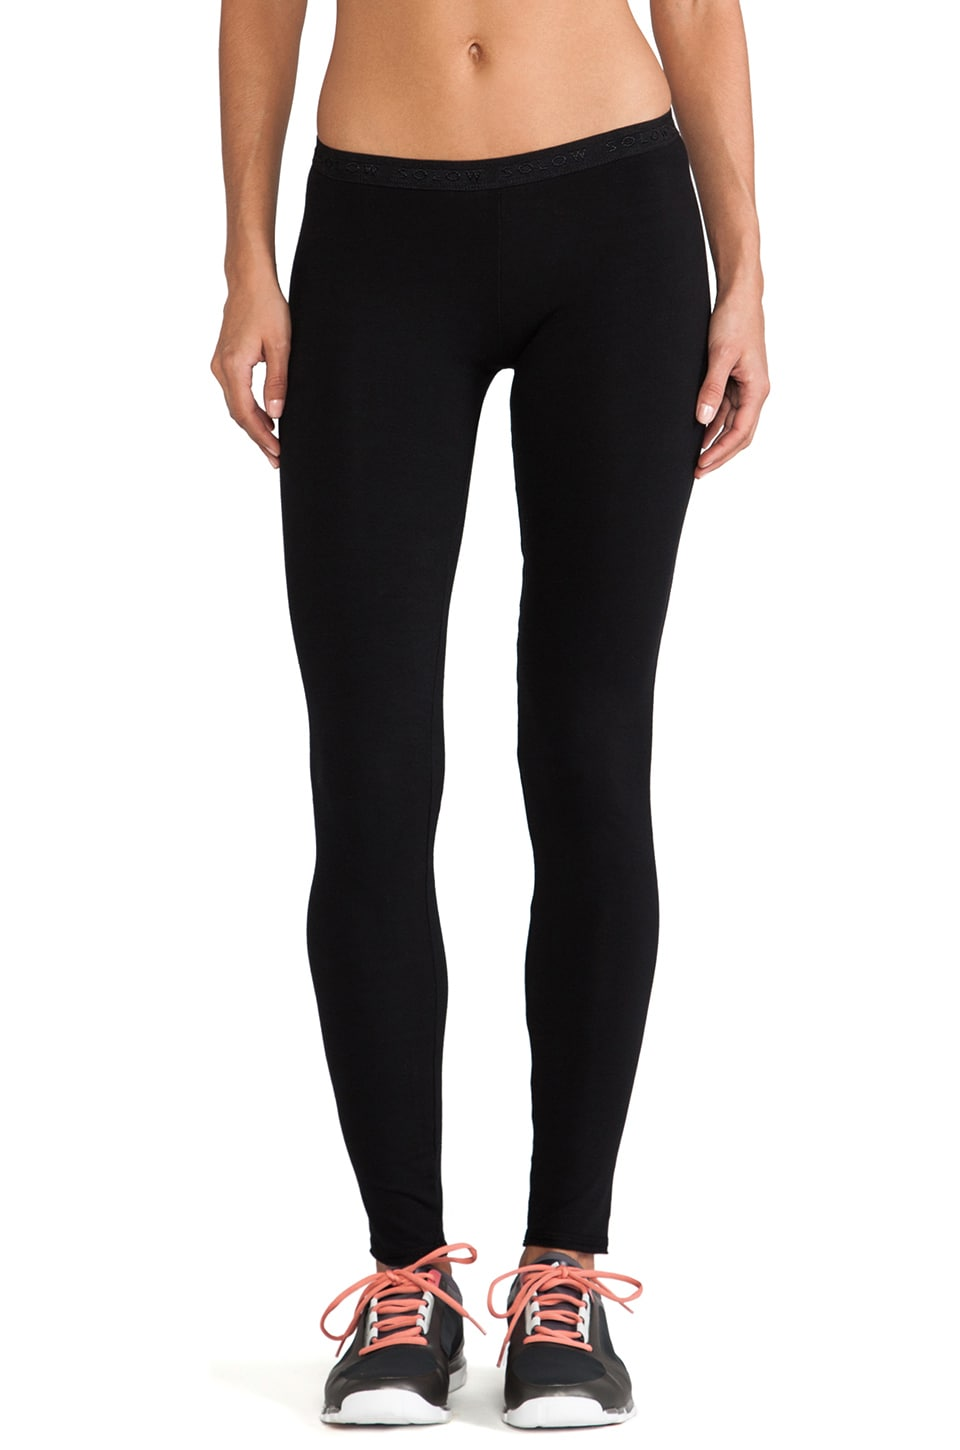 SOLOW Basics Long Leggings in Black